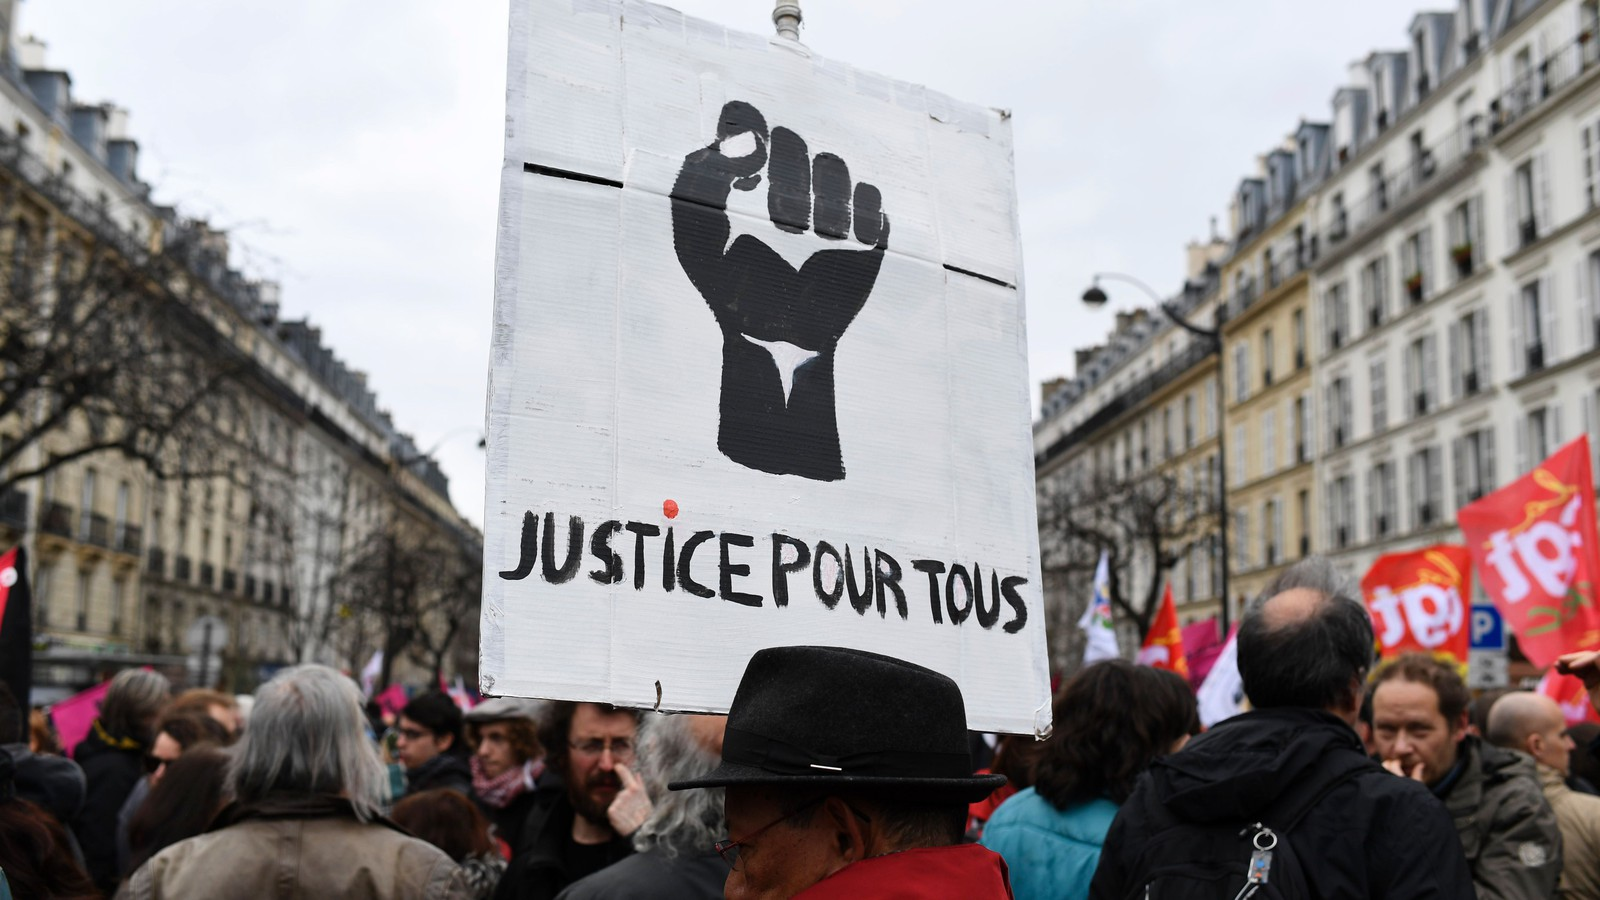 Racial Justice in Europe: A Black Woman's Perspective in the UK and France